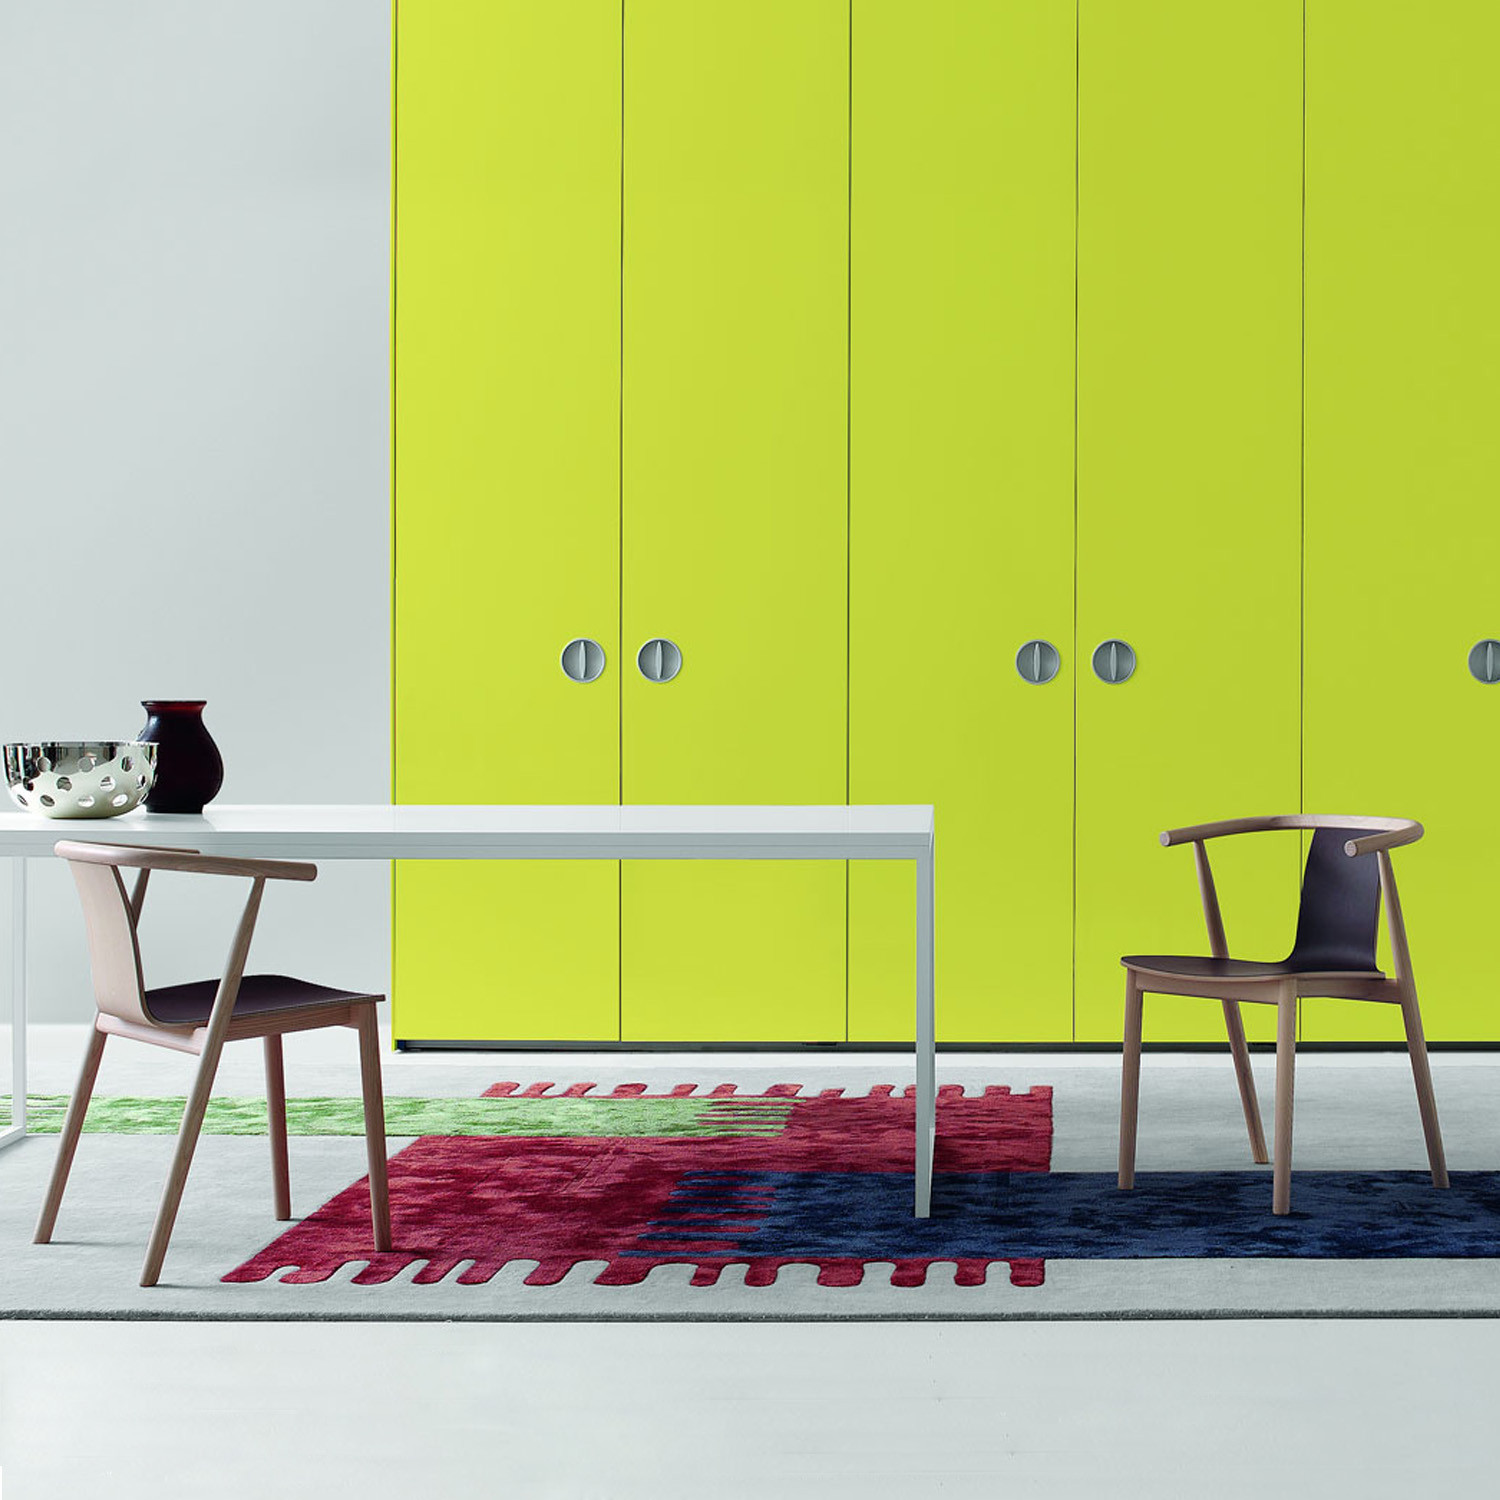 Bac Chairs by Cappellini